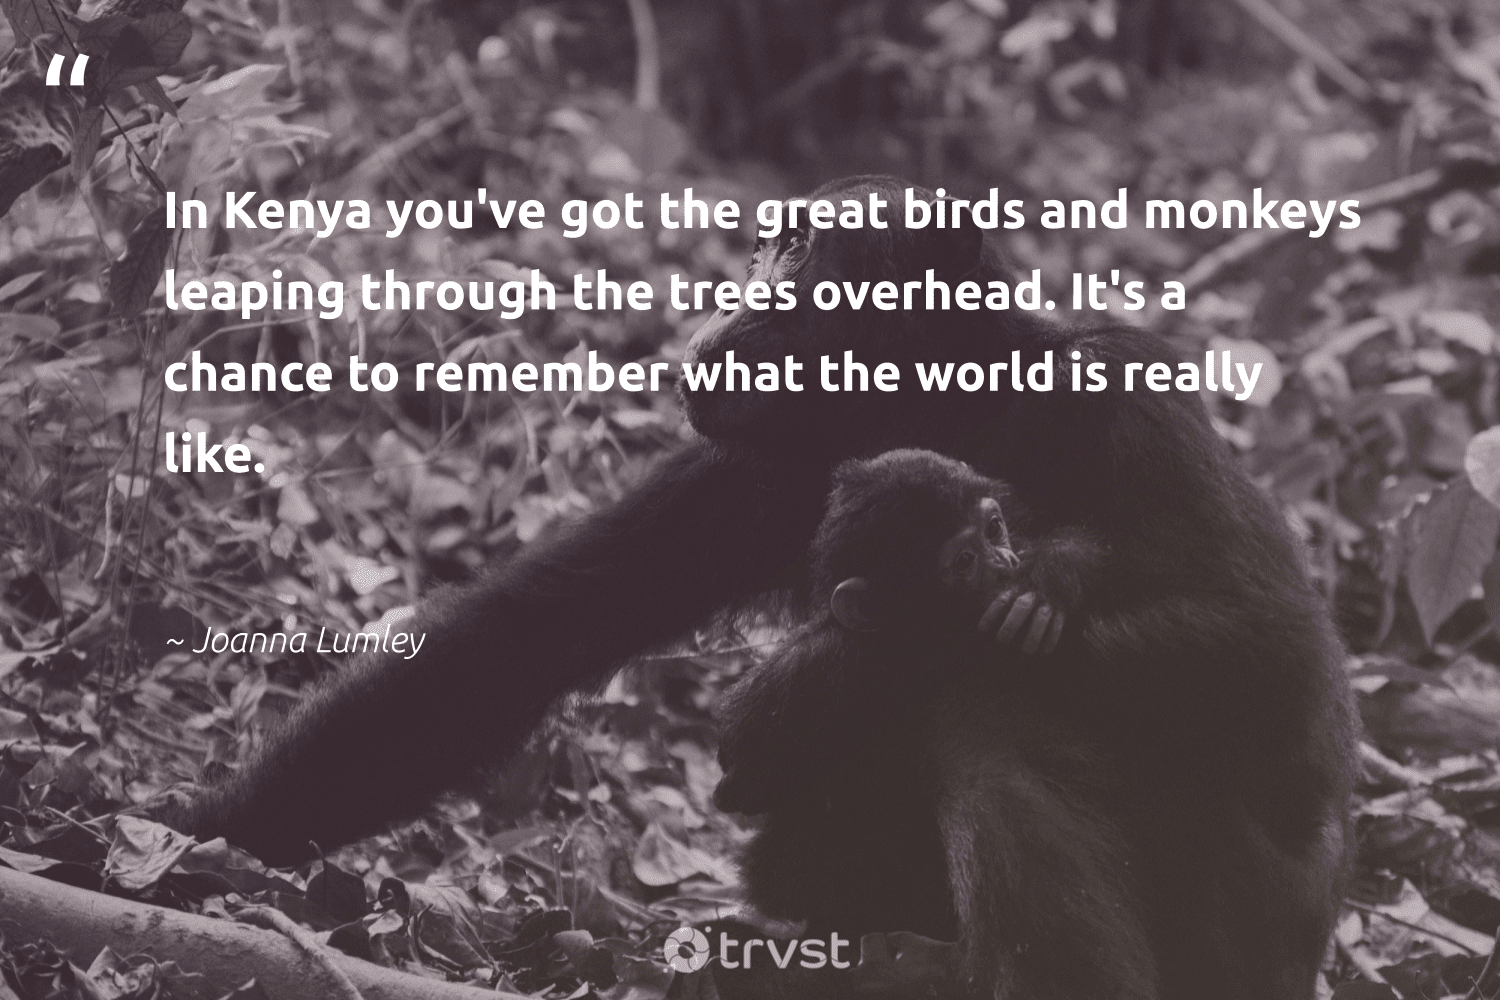 """""""In Kenya you've got the great birds and monkeys leaping through the trees overhead. It's a chance to remember what the world is really like.""""  - Joanna Lumley #trvst #quotes #trees #birds #monkeys #forest #protectnature #natureseekers #impact #arborarmy #majesticwildlife #earth"""